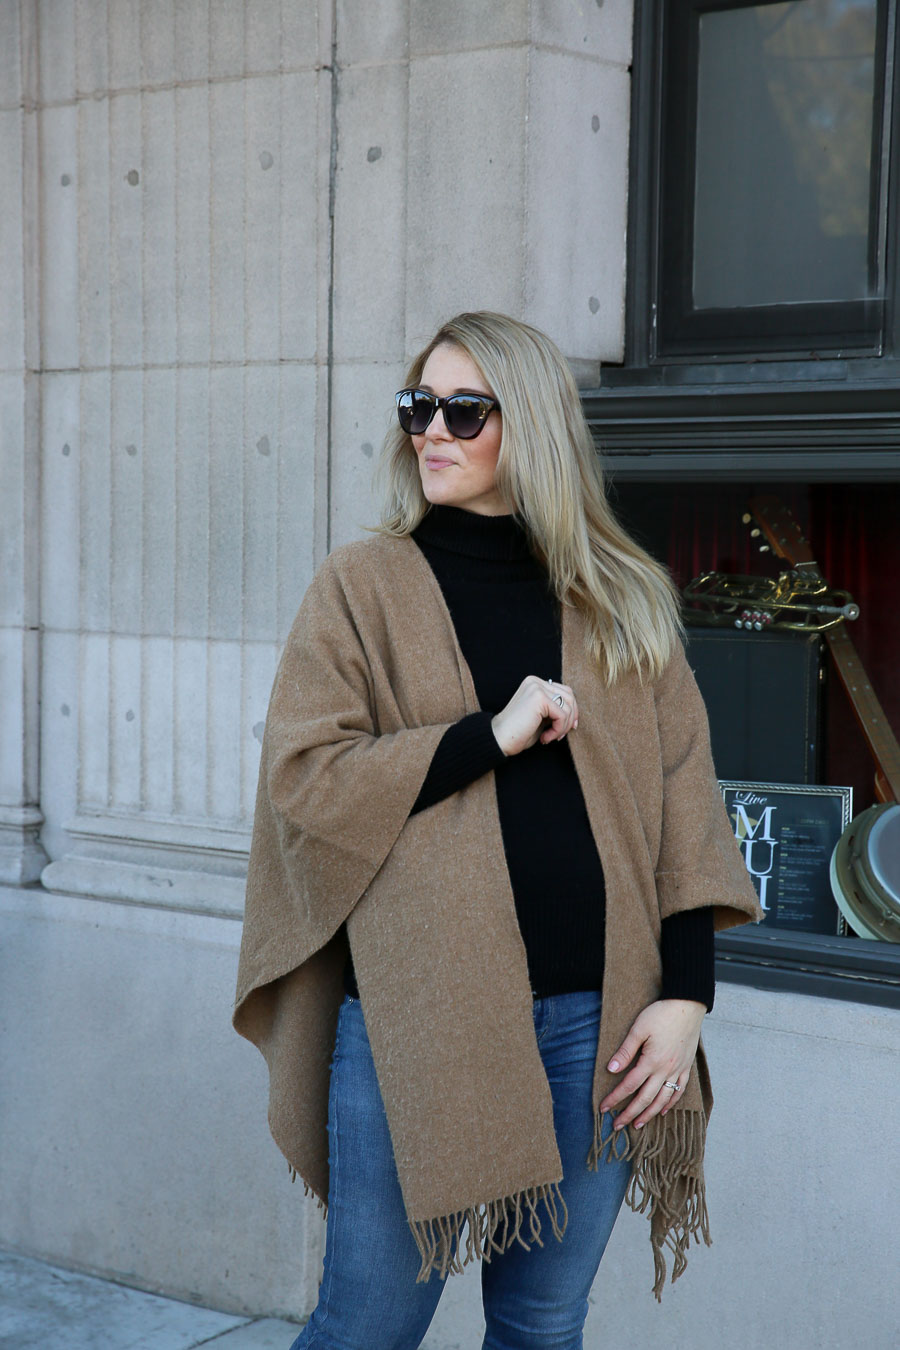 Layered Winter Outfit for Women with Shawl, Turtleneck, and Jeans